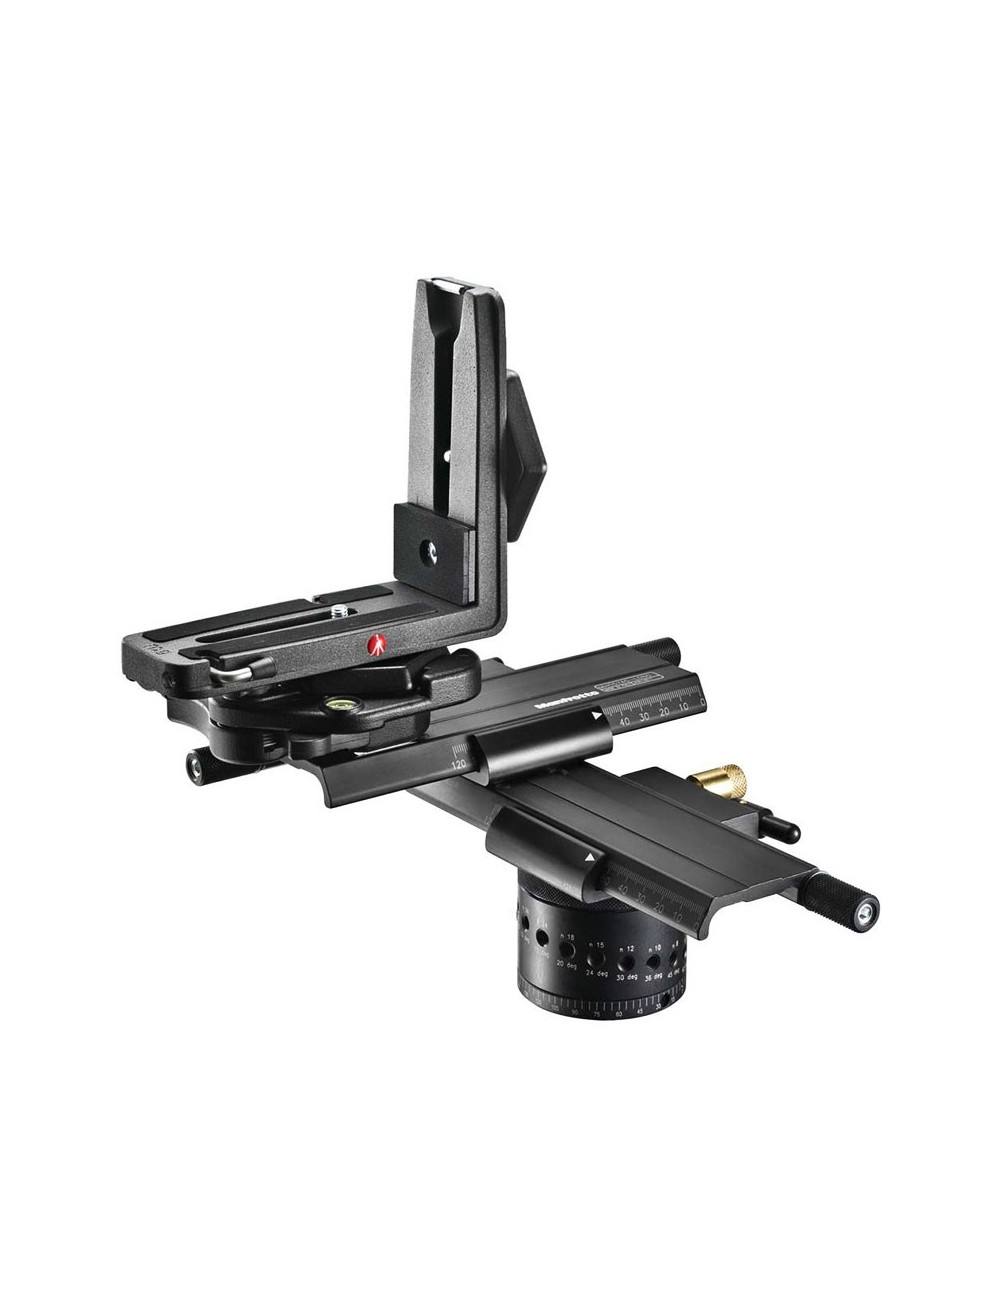 Rótula Manfrotto MH057A5 con base larga